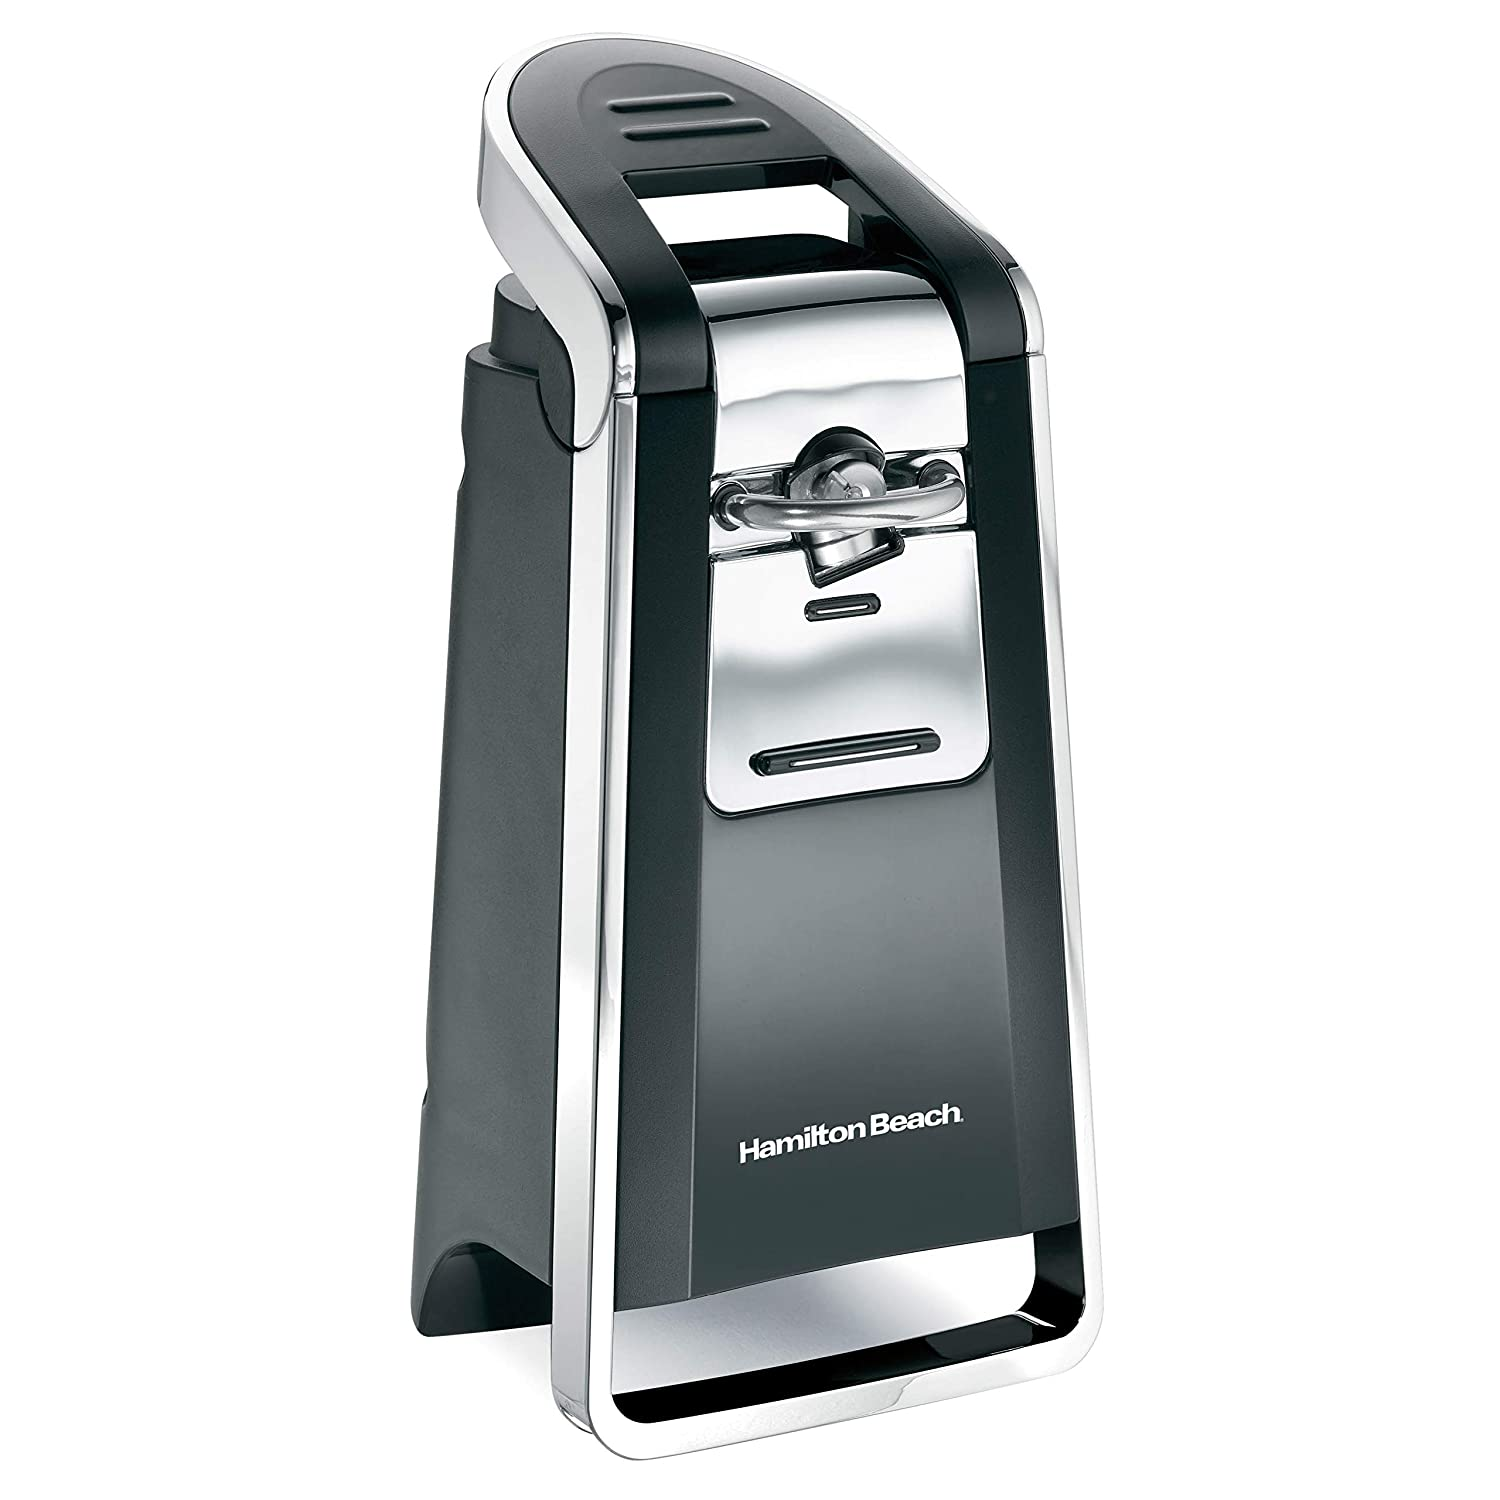 Hamilton Beach 76606ZA Smooth Touch Electric Automatic Can Opener with Easy Push Down Lever, Opens All Standard-Size and Pop-Top Cans, Black and Chrome